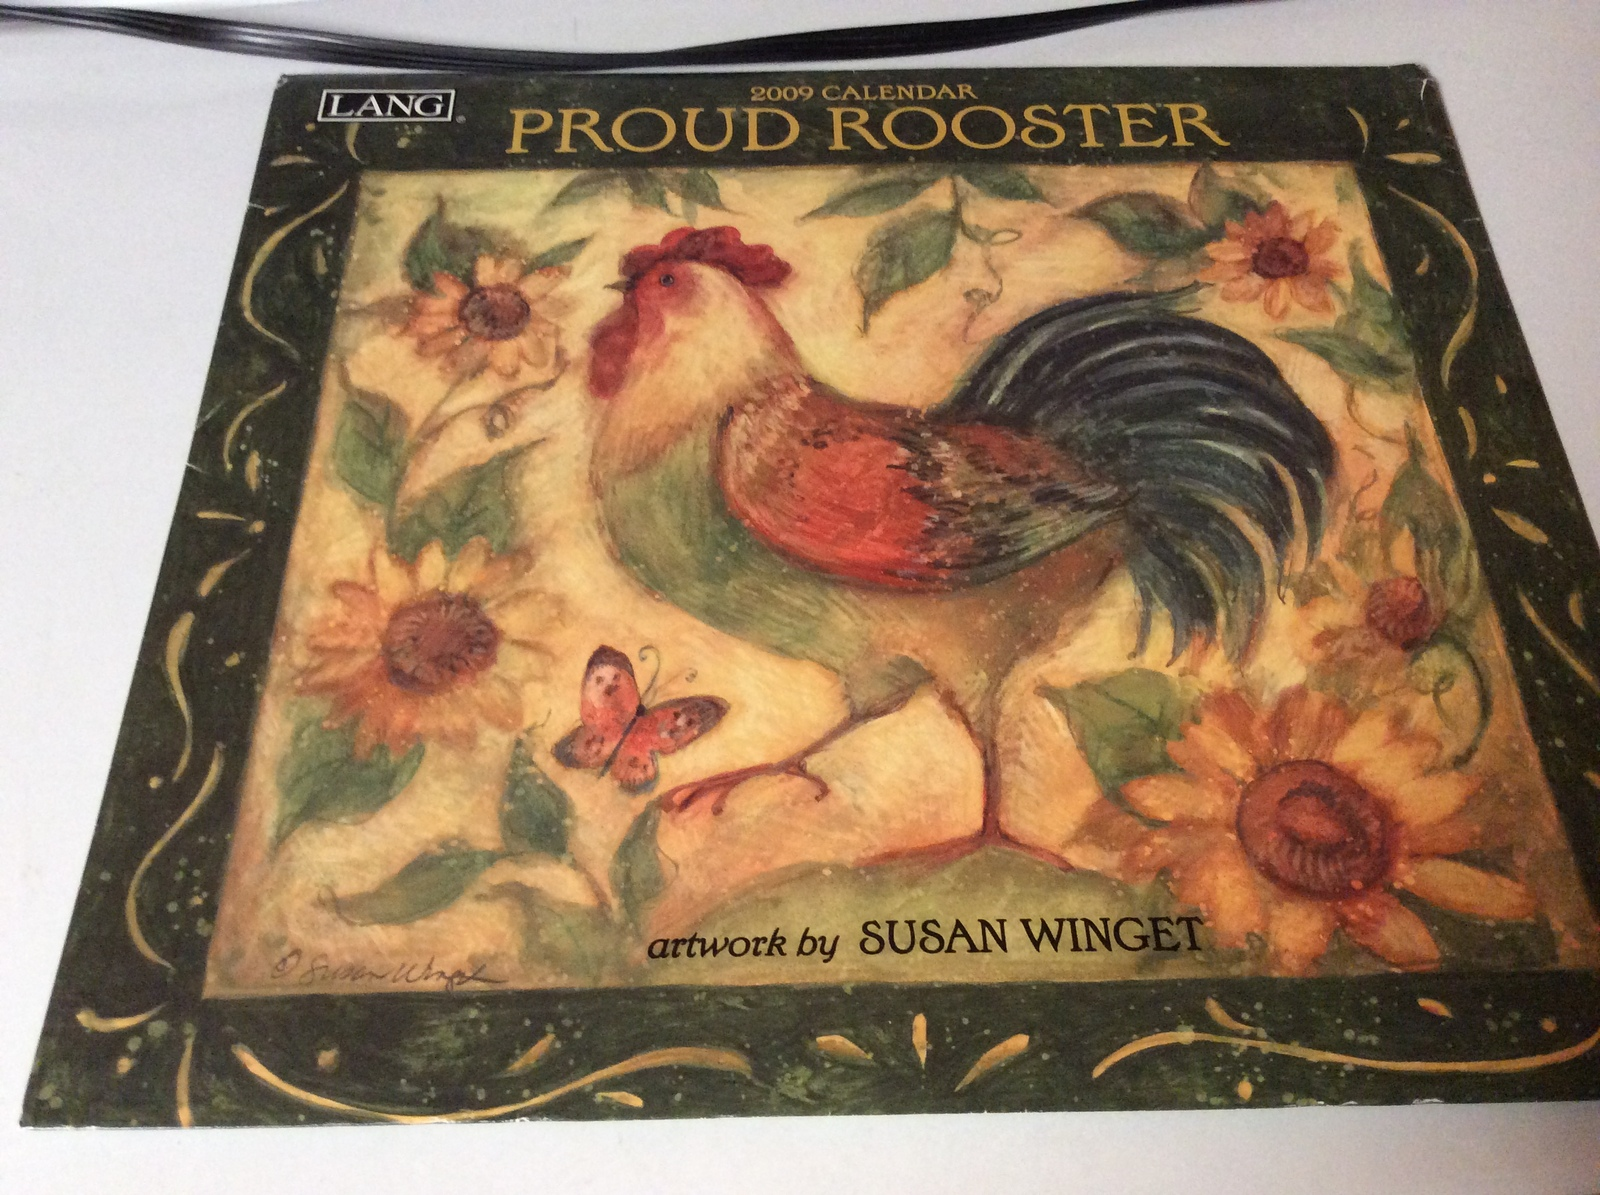 2009 Proud Rooster Calendar Used by Susan Wingest - Pictures Frameable